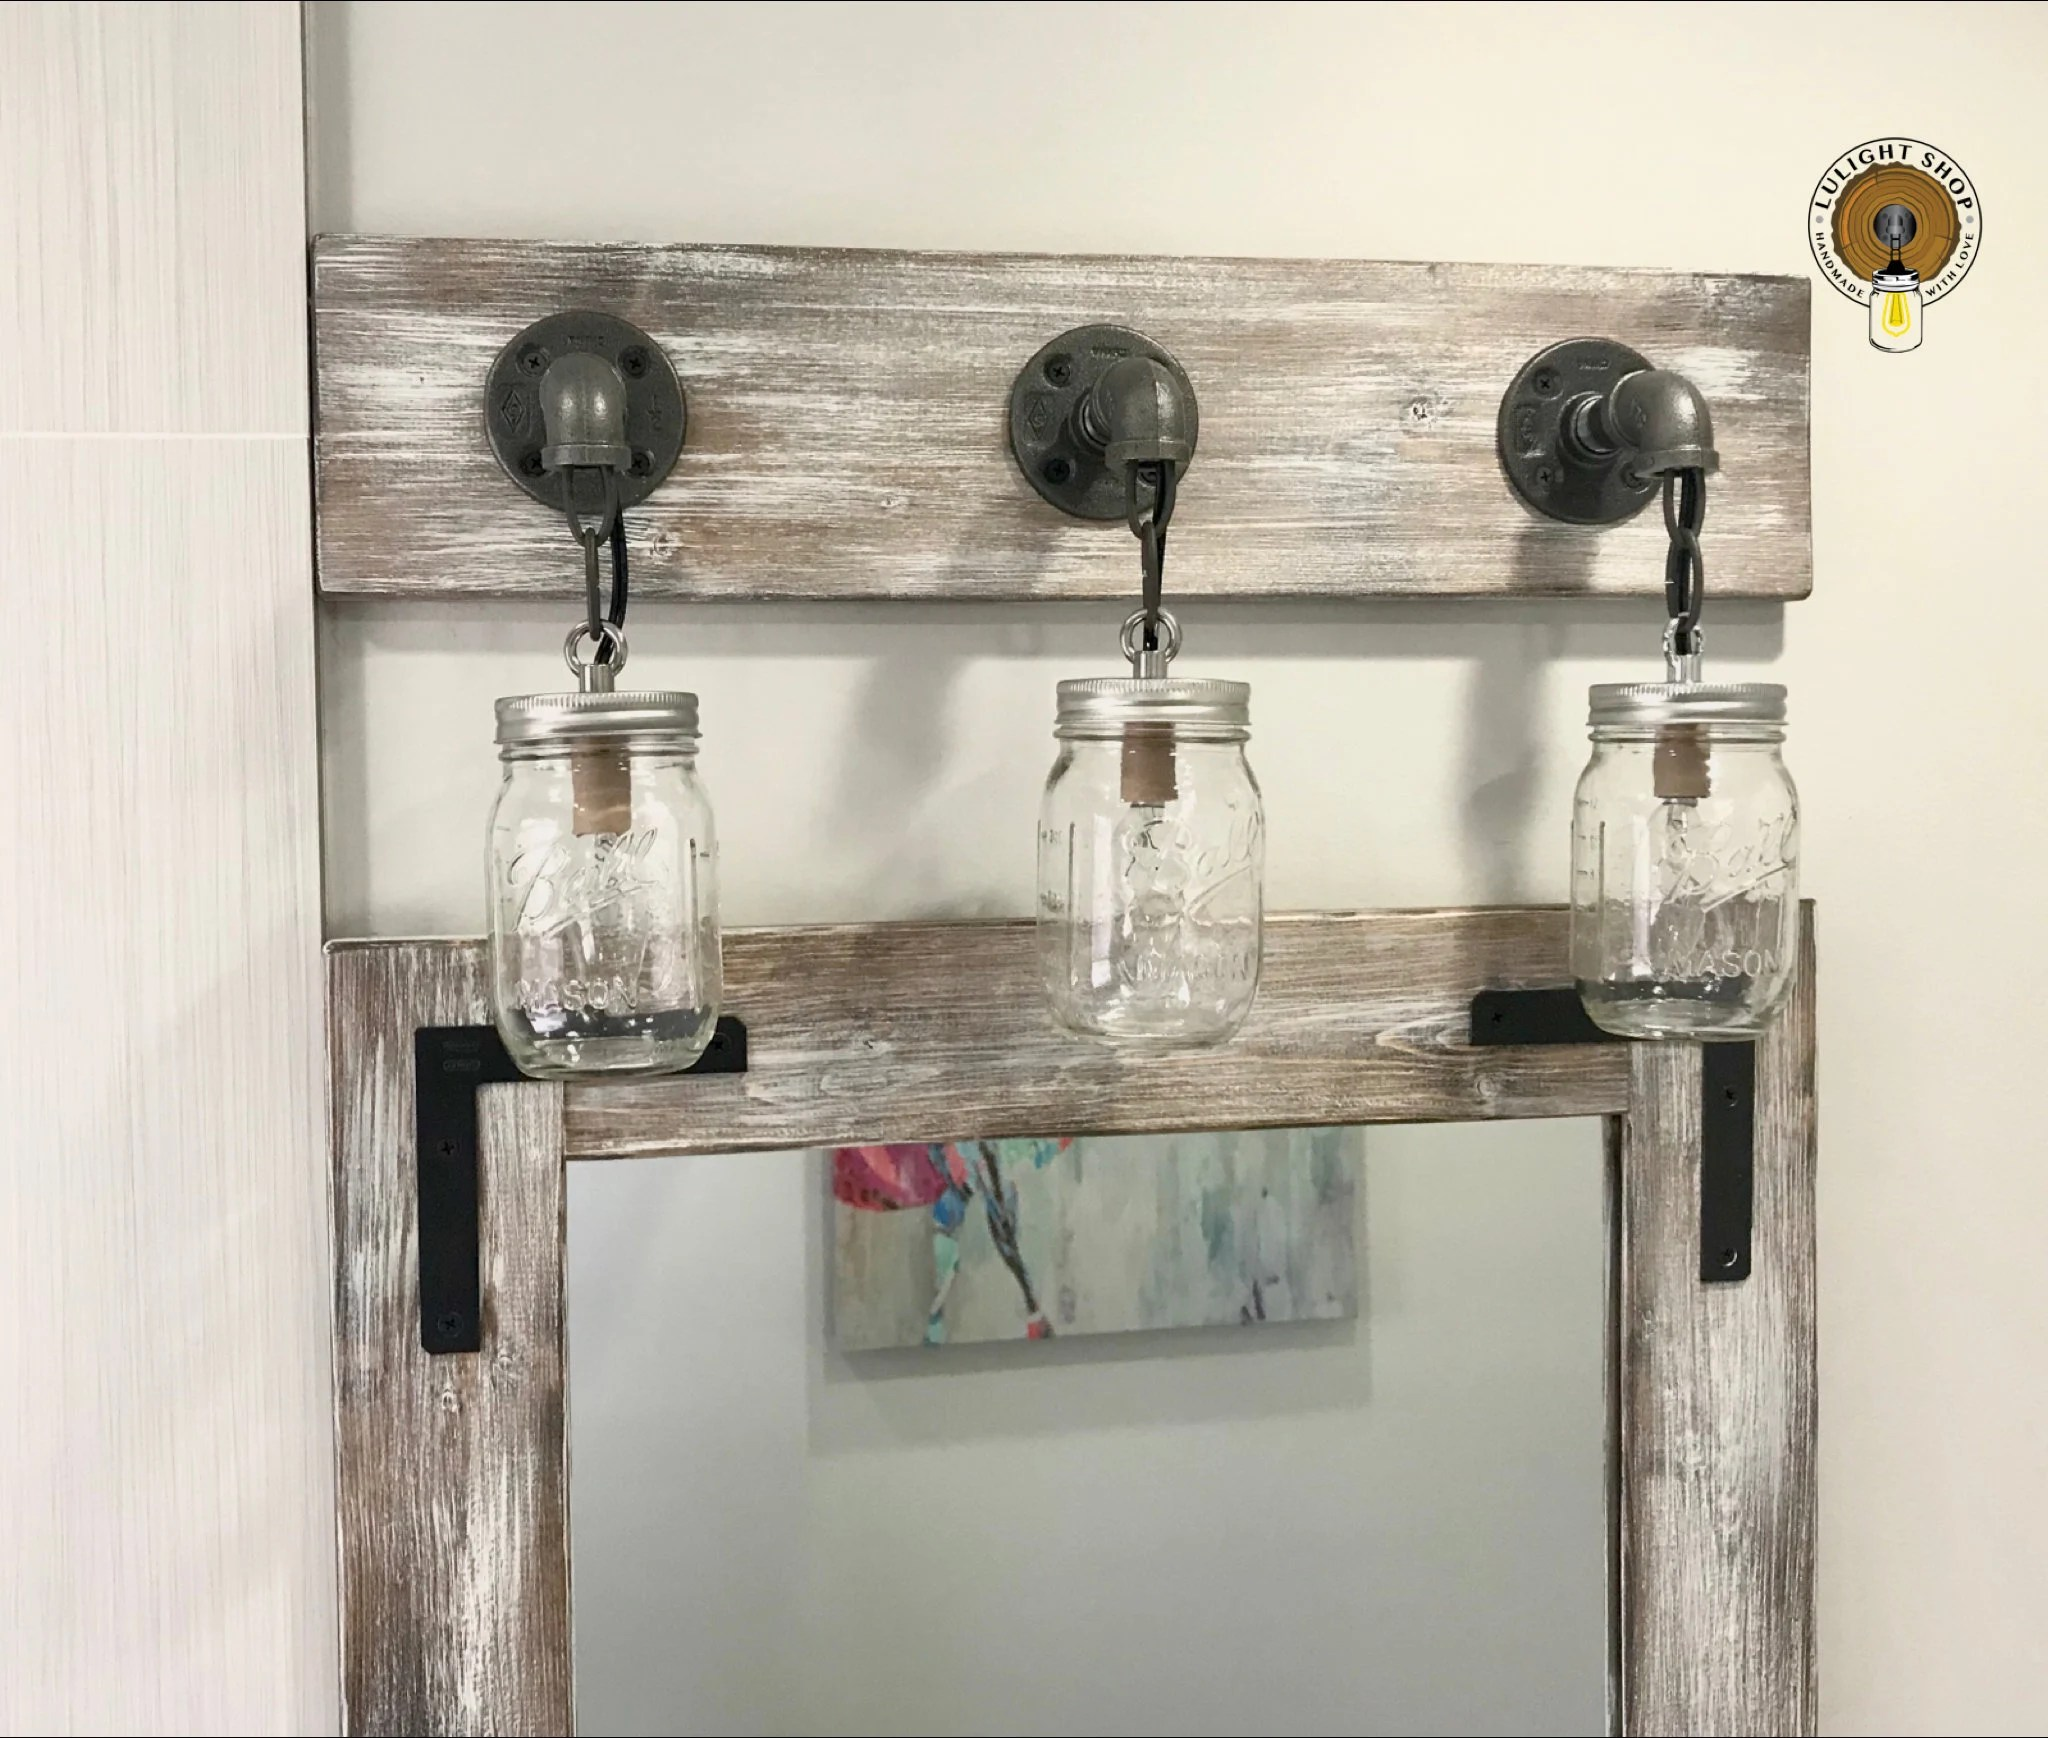 Mason Jar Bathroom Light Light Whitewash Vanity Light Fixture Mason Jar Light Bathroom Lighting Mason Jar Fixtures Wood Light Wall Lighting Beach House Lights